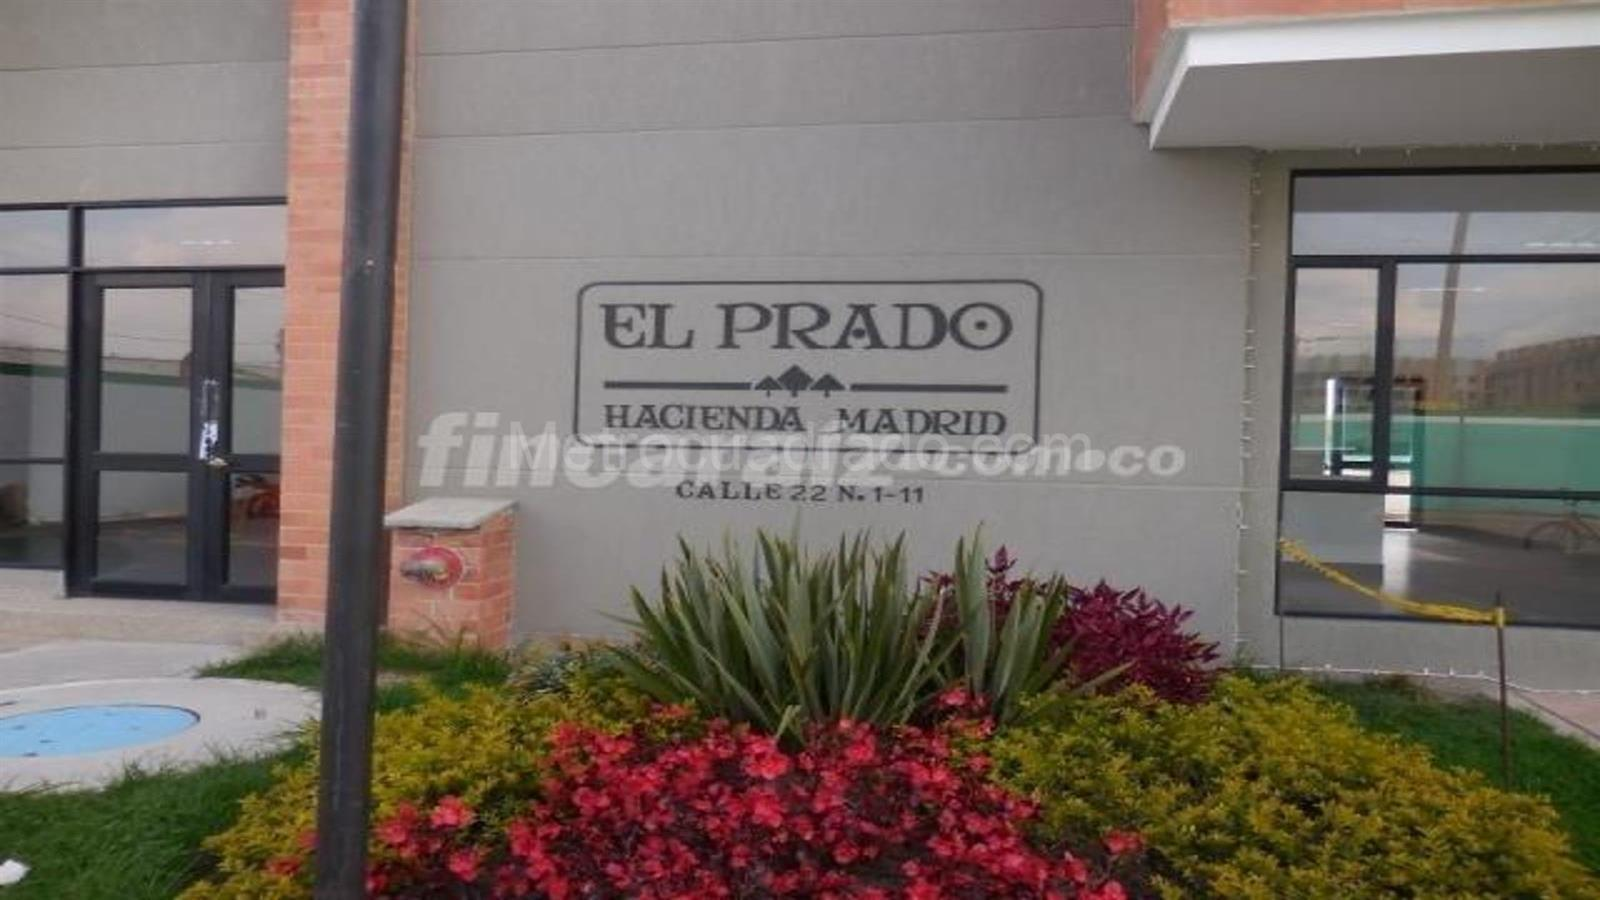 Venta de apartamento en hacienda madrid madrid mc1689302 for Oficina hacienda madrid